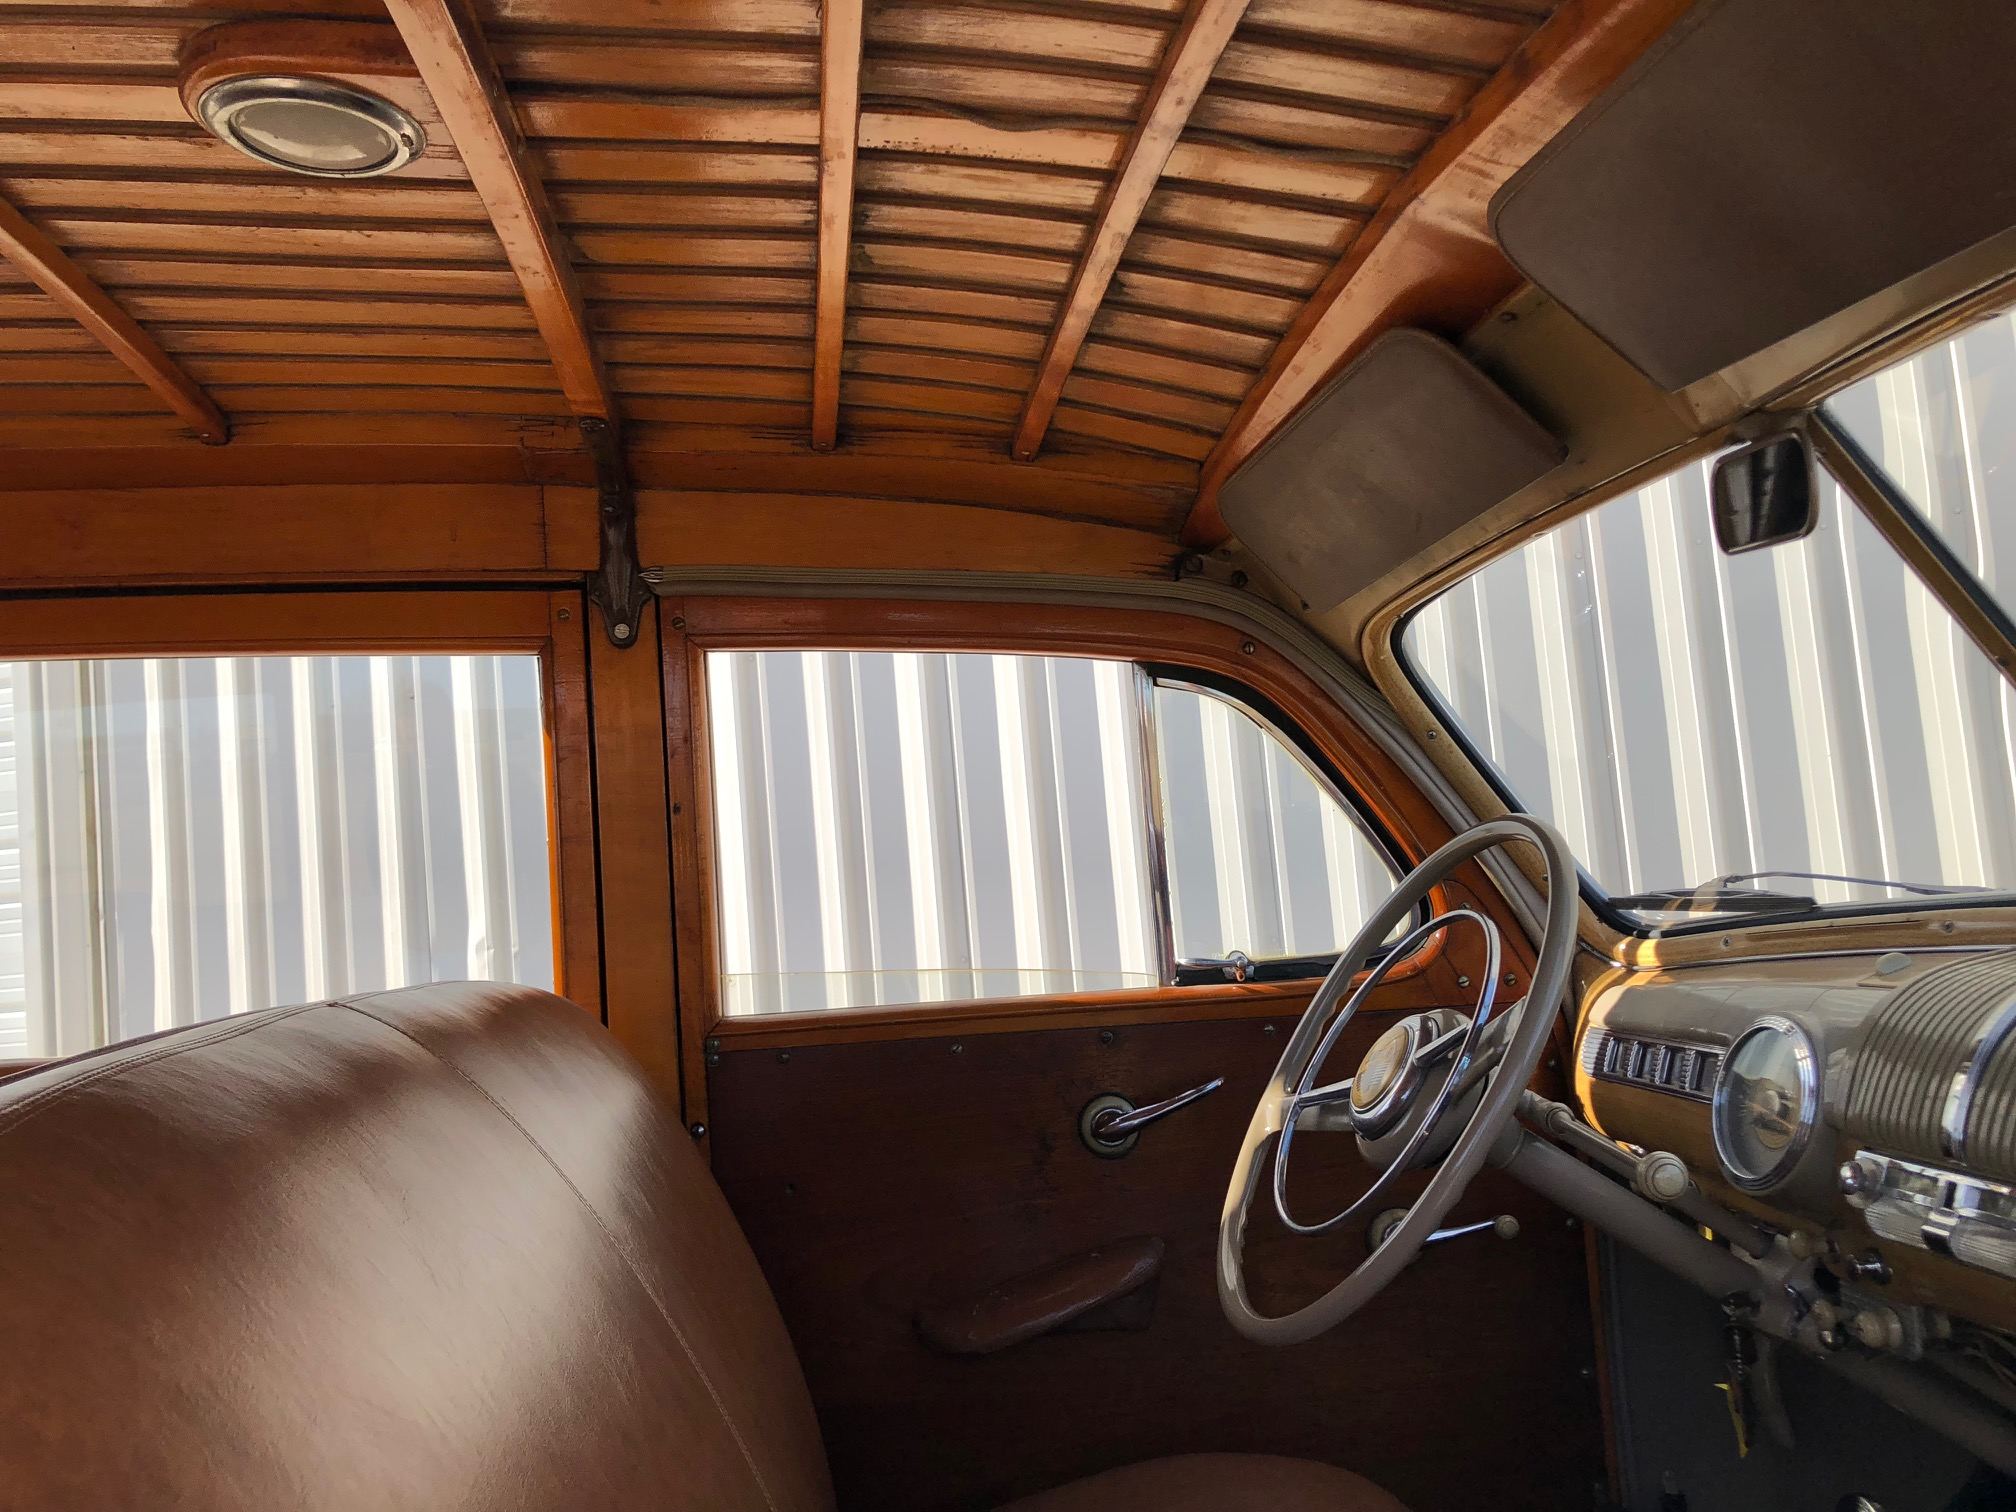 8th Image of a 1947 FORD SUPER DELUXE WOODY